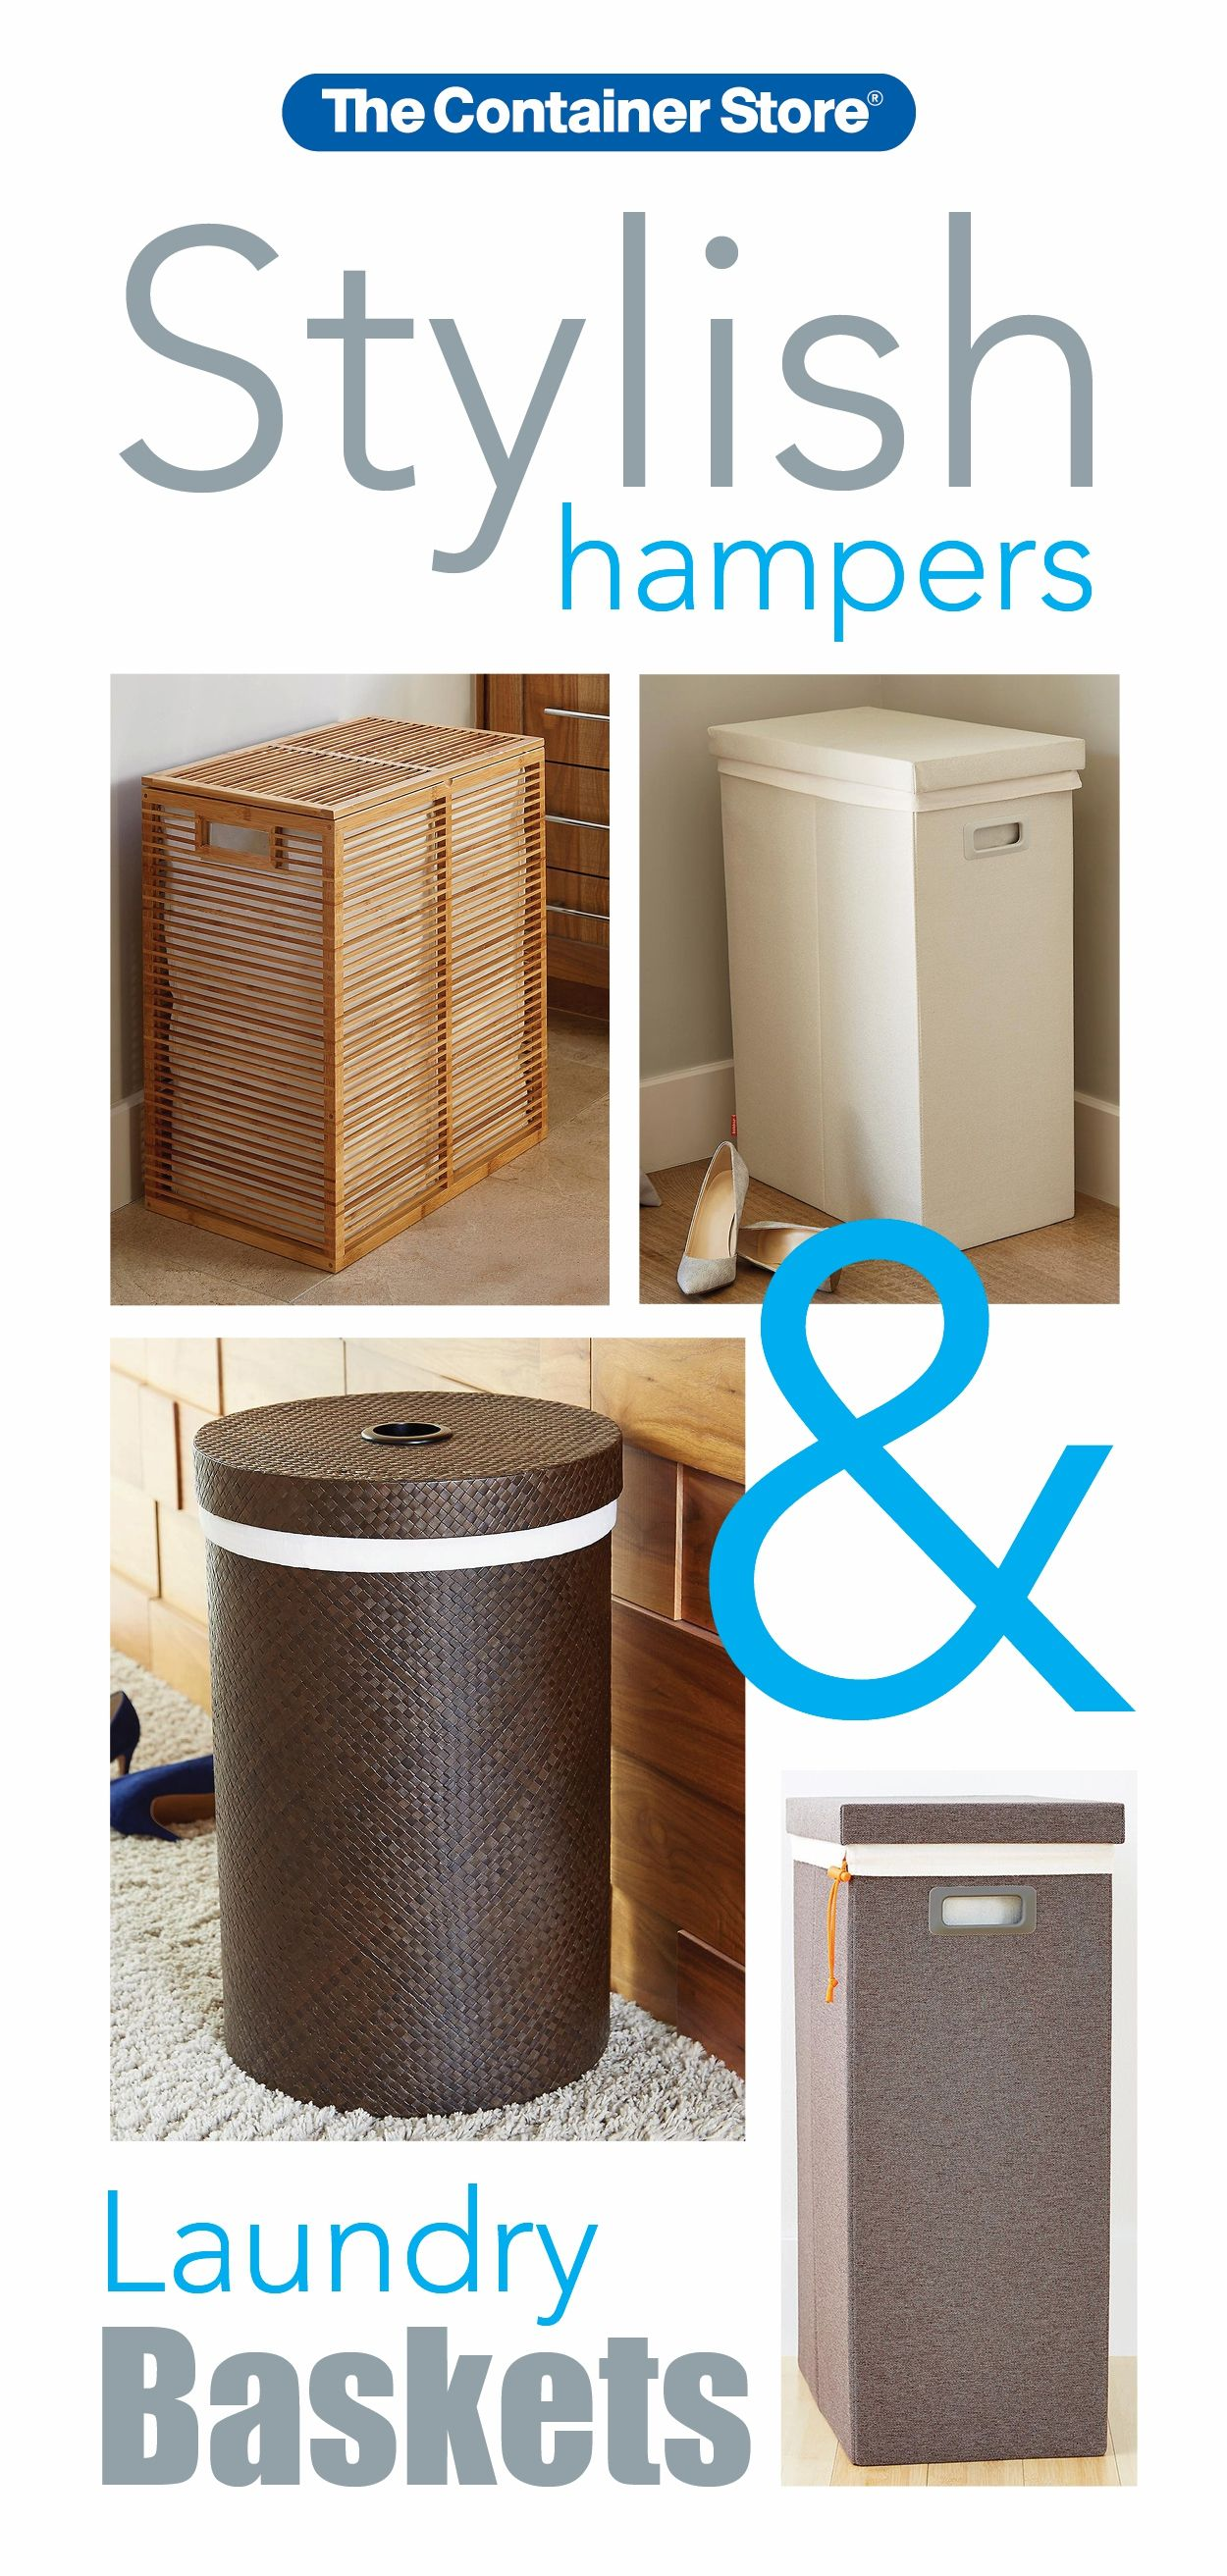 Check Out Our Stylish Hampers And Baskets With Images Laundry Hamper Fabric Storage Bins Grey Laundry Basket